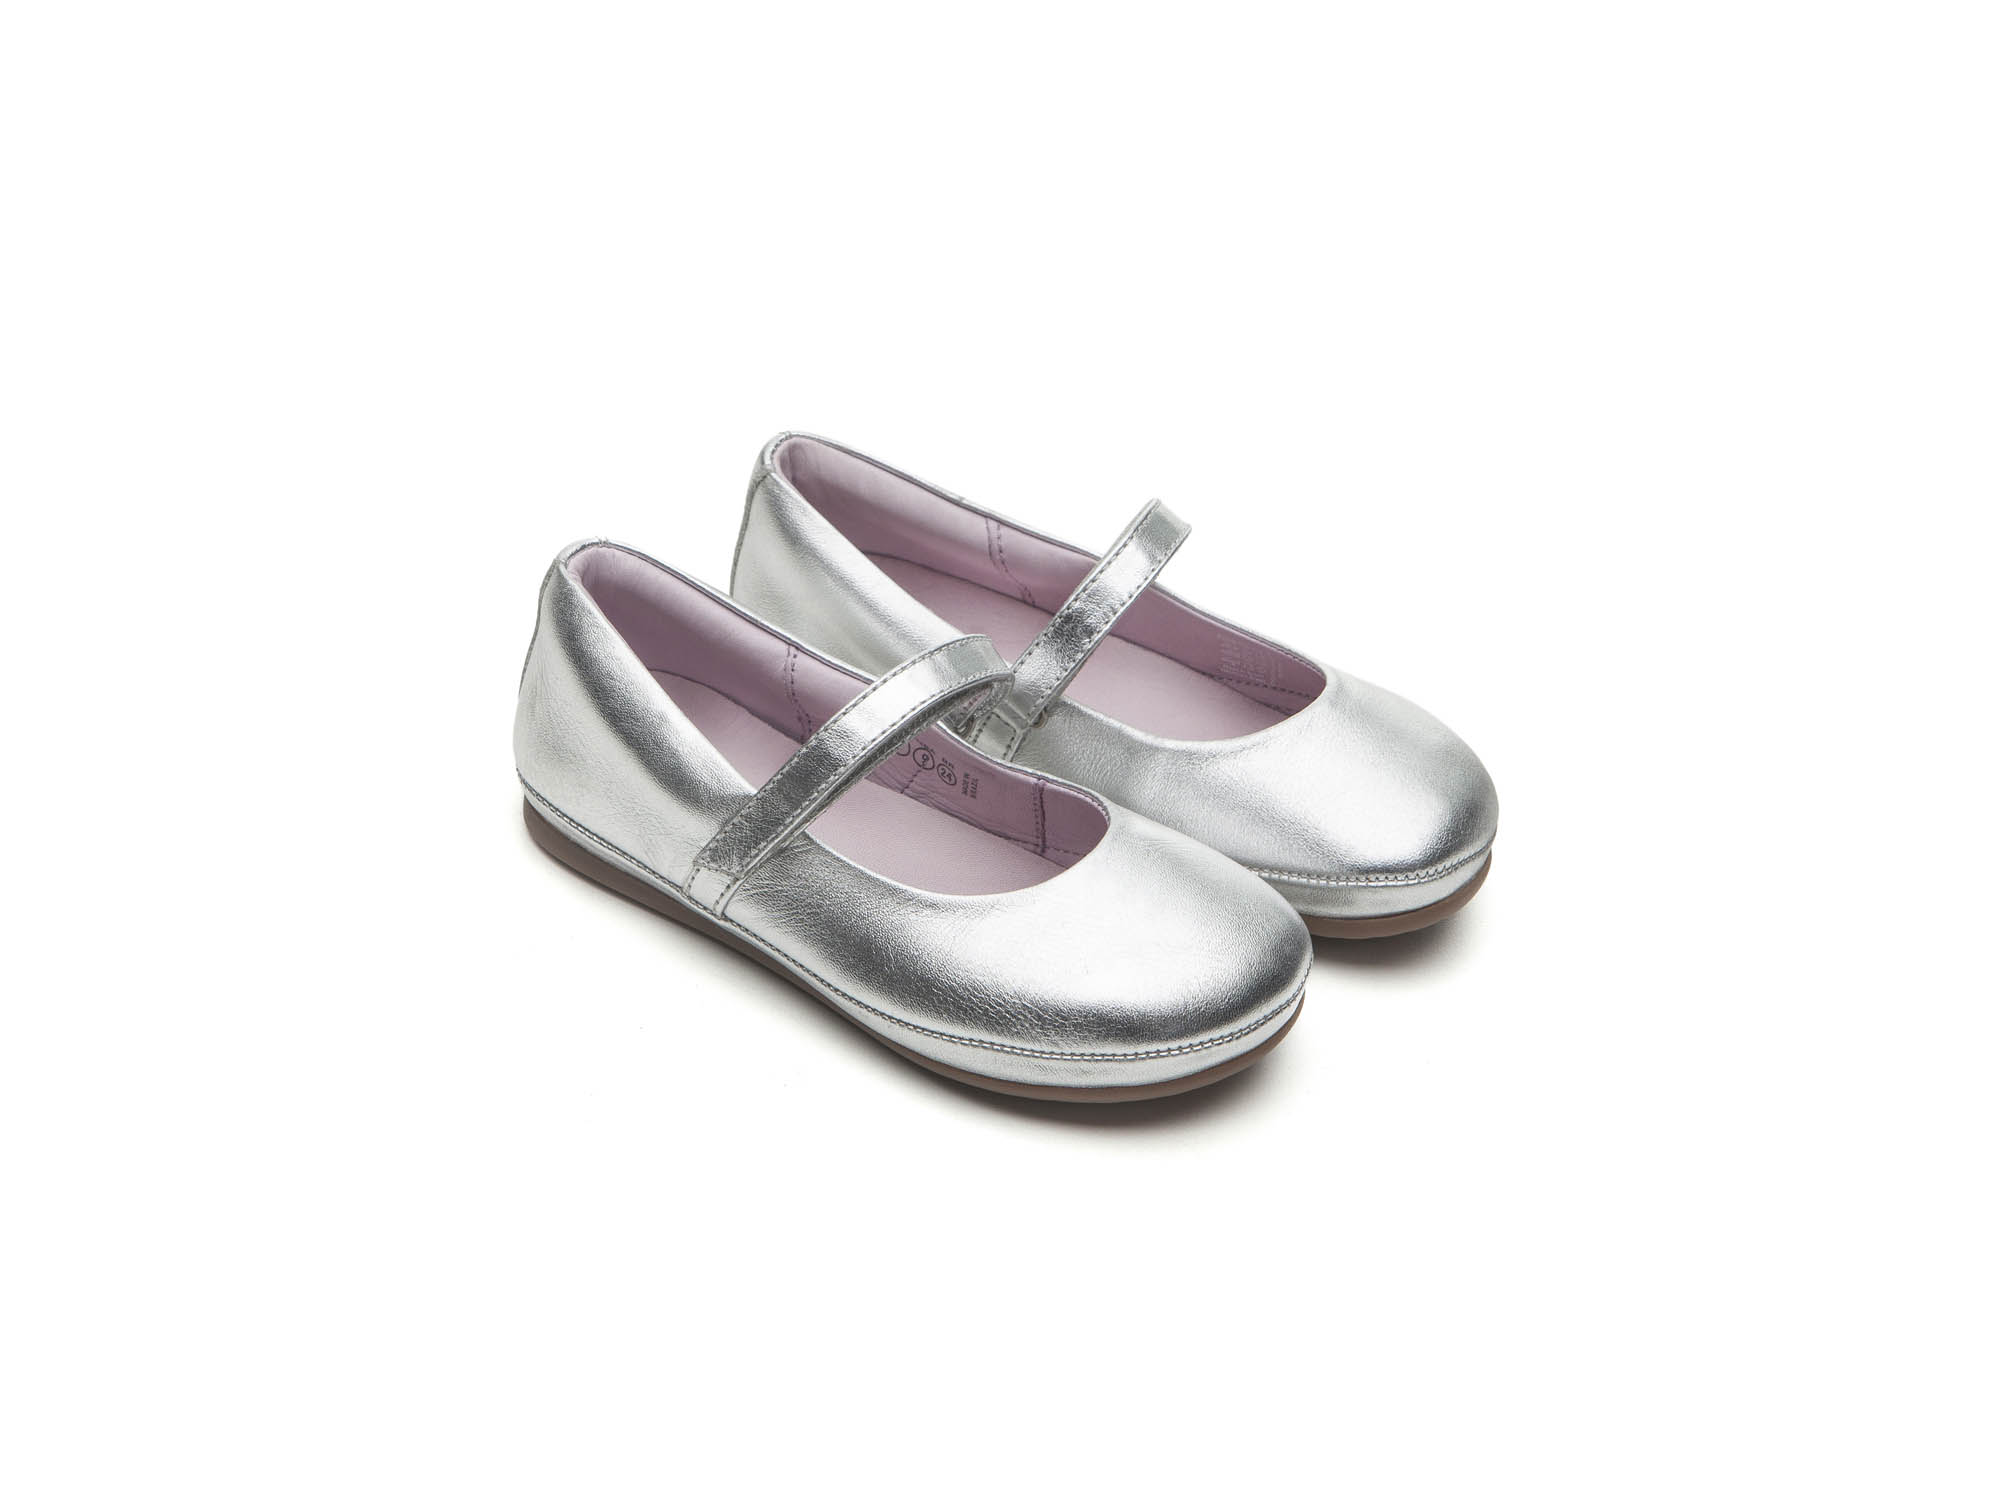 Boneca Little Twirl Sterling Silver Toddler 2 à 4 anos - 0